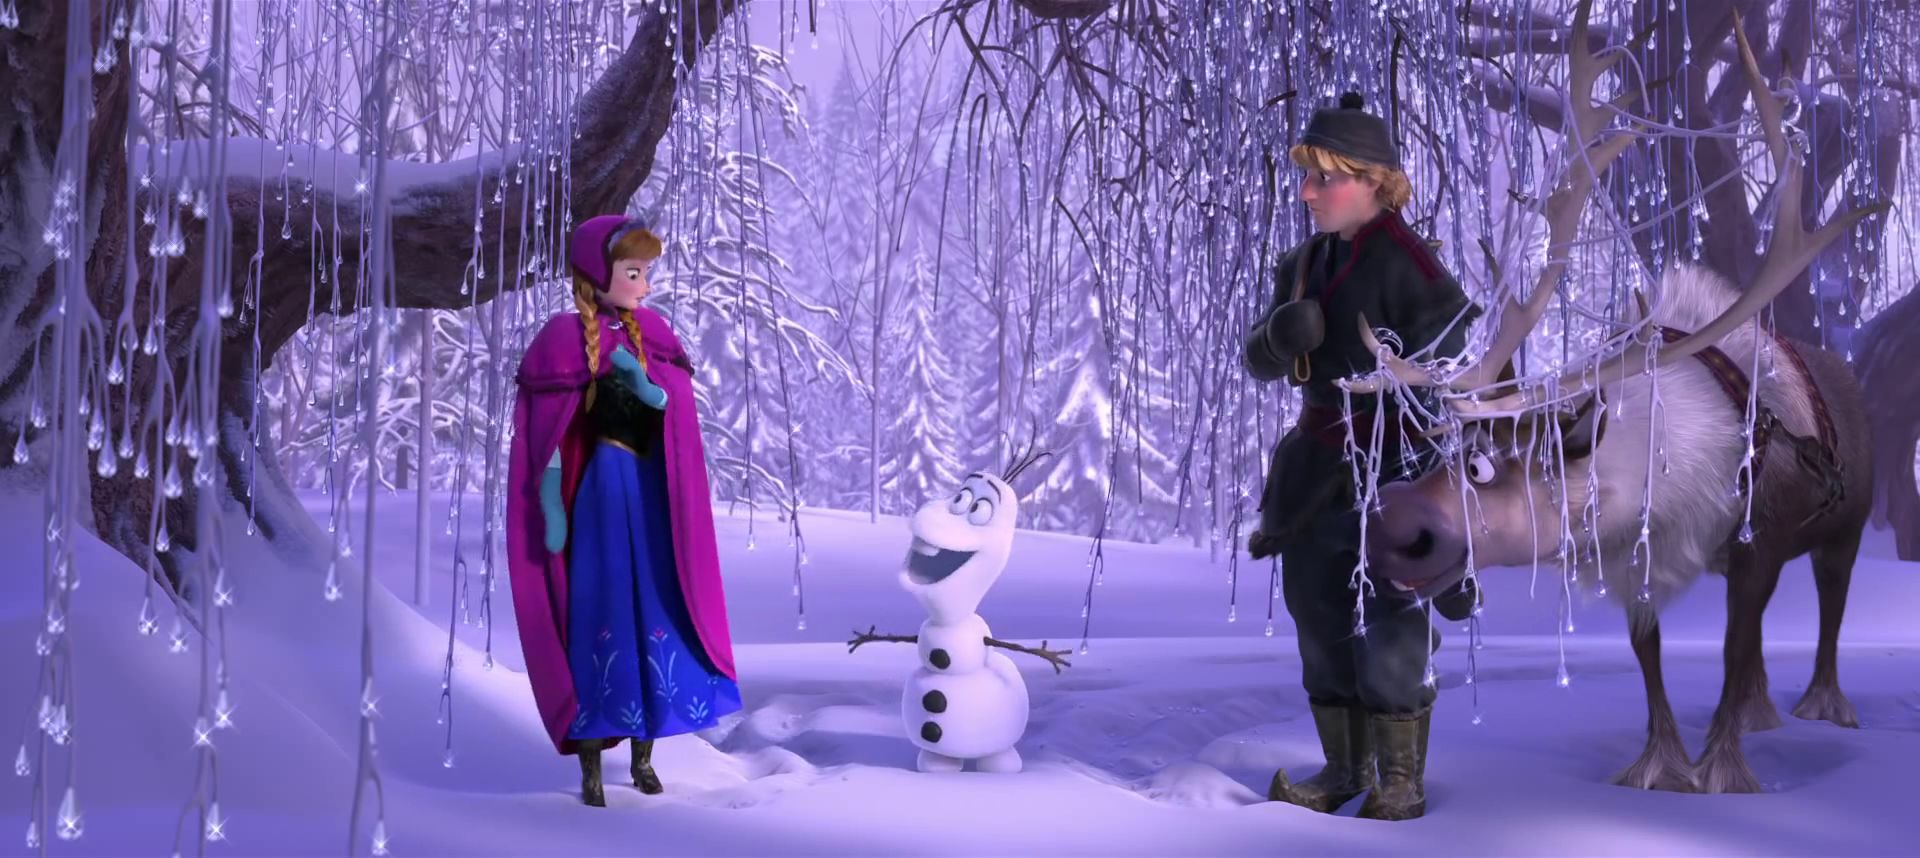 One Year Later: Frozen / The Dissolve